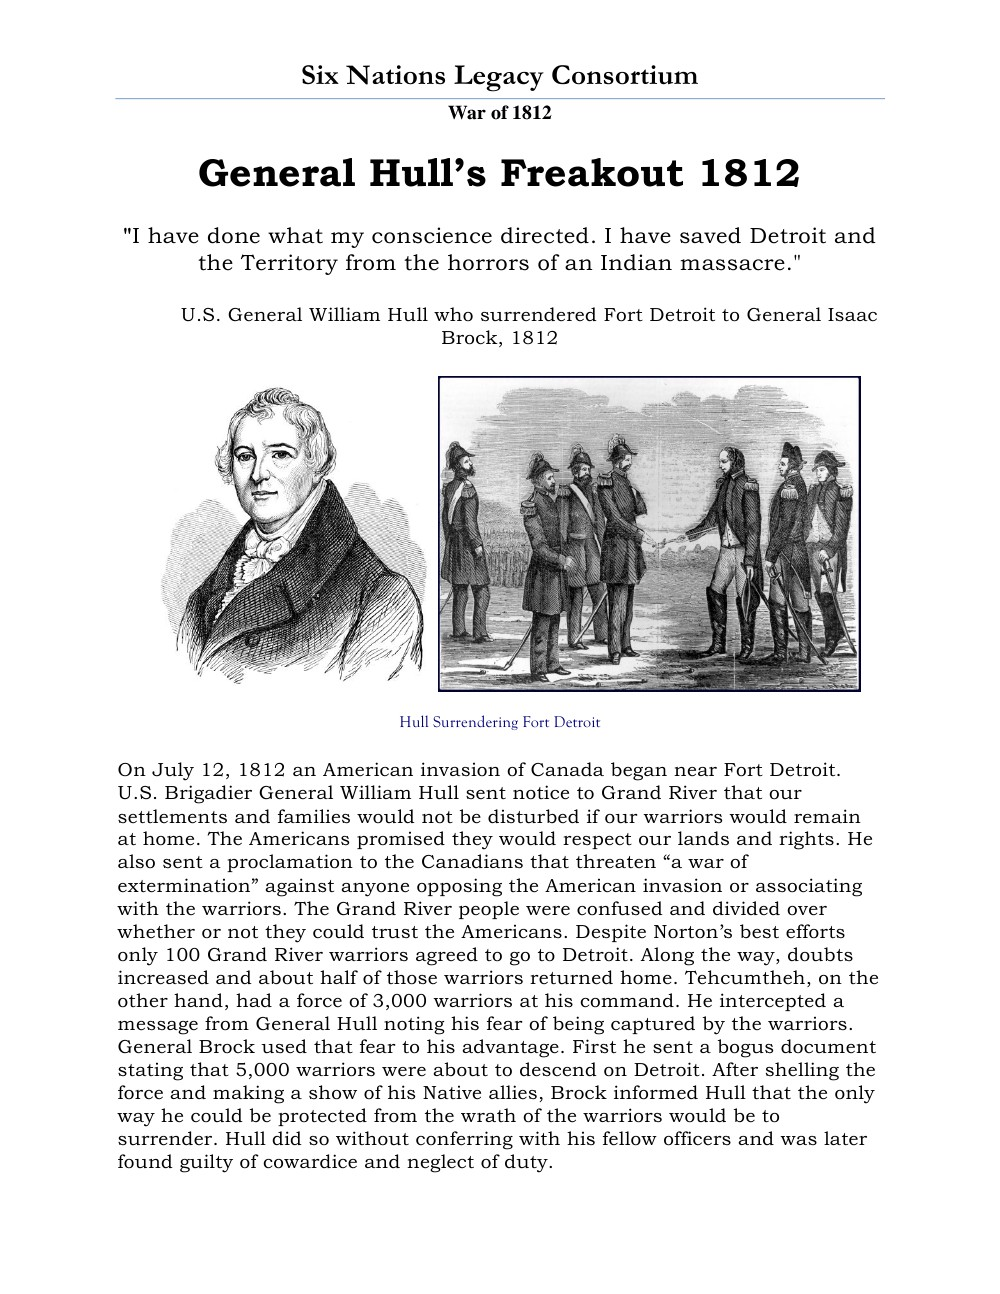 War of 1812 Series (13): General Hull's Freakout